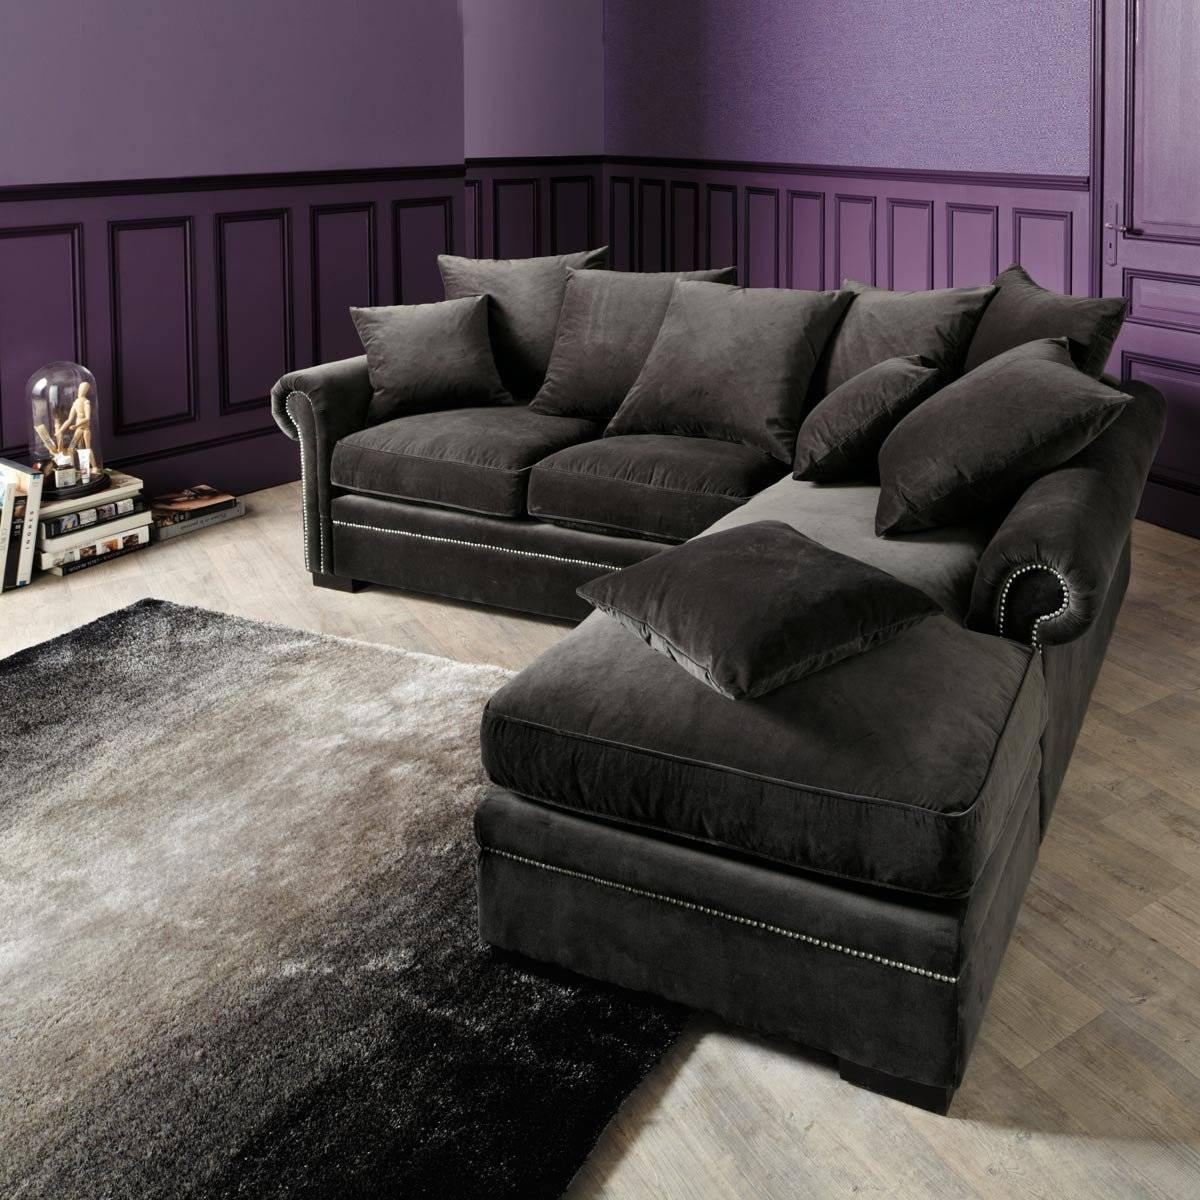 Grey Velvet Sofa Sectional | Centerfieldbar with regard to Charcoal Gray Sectional Sofas (Image 10 of 15)